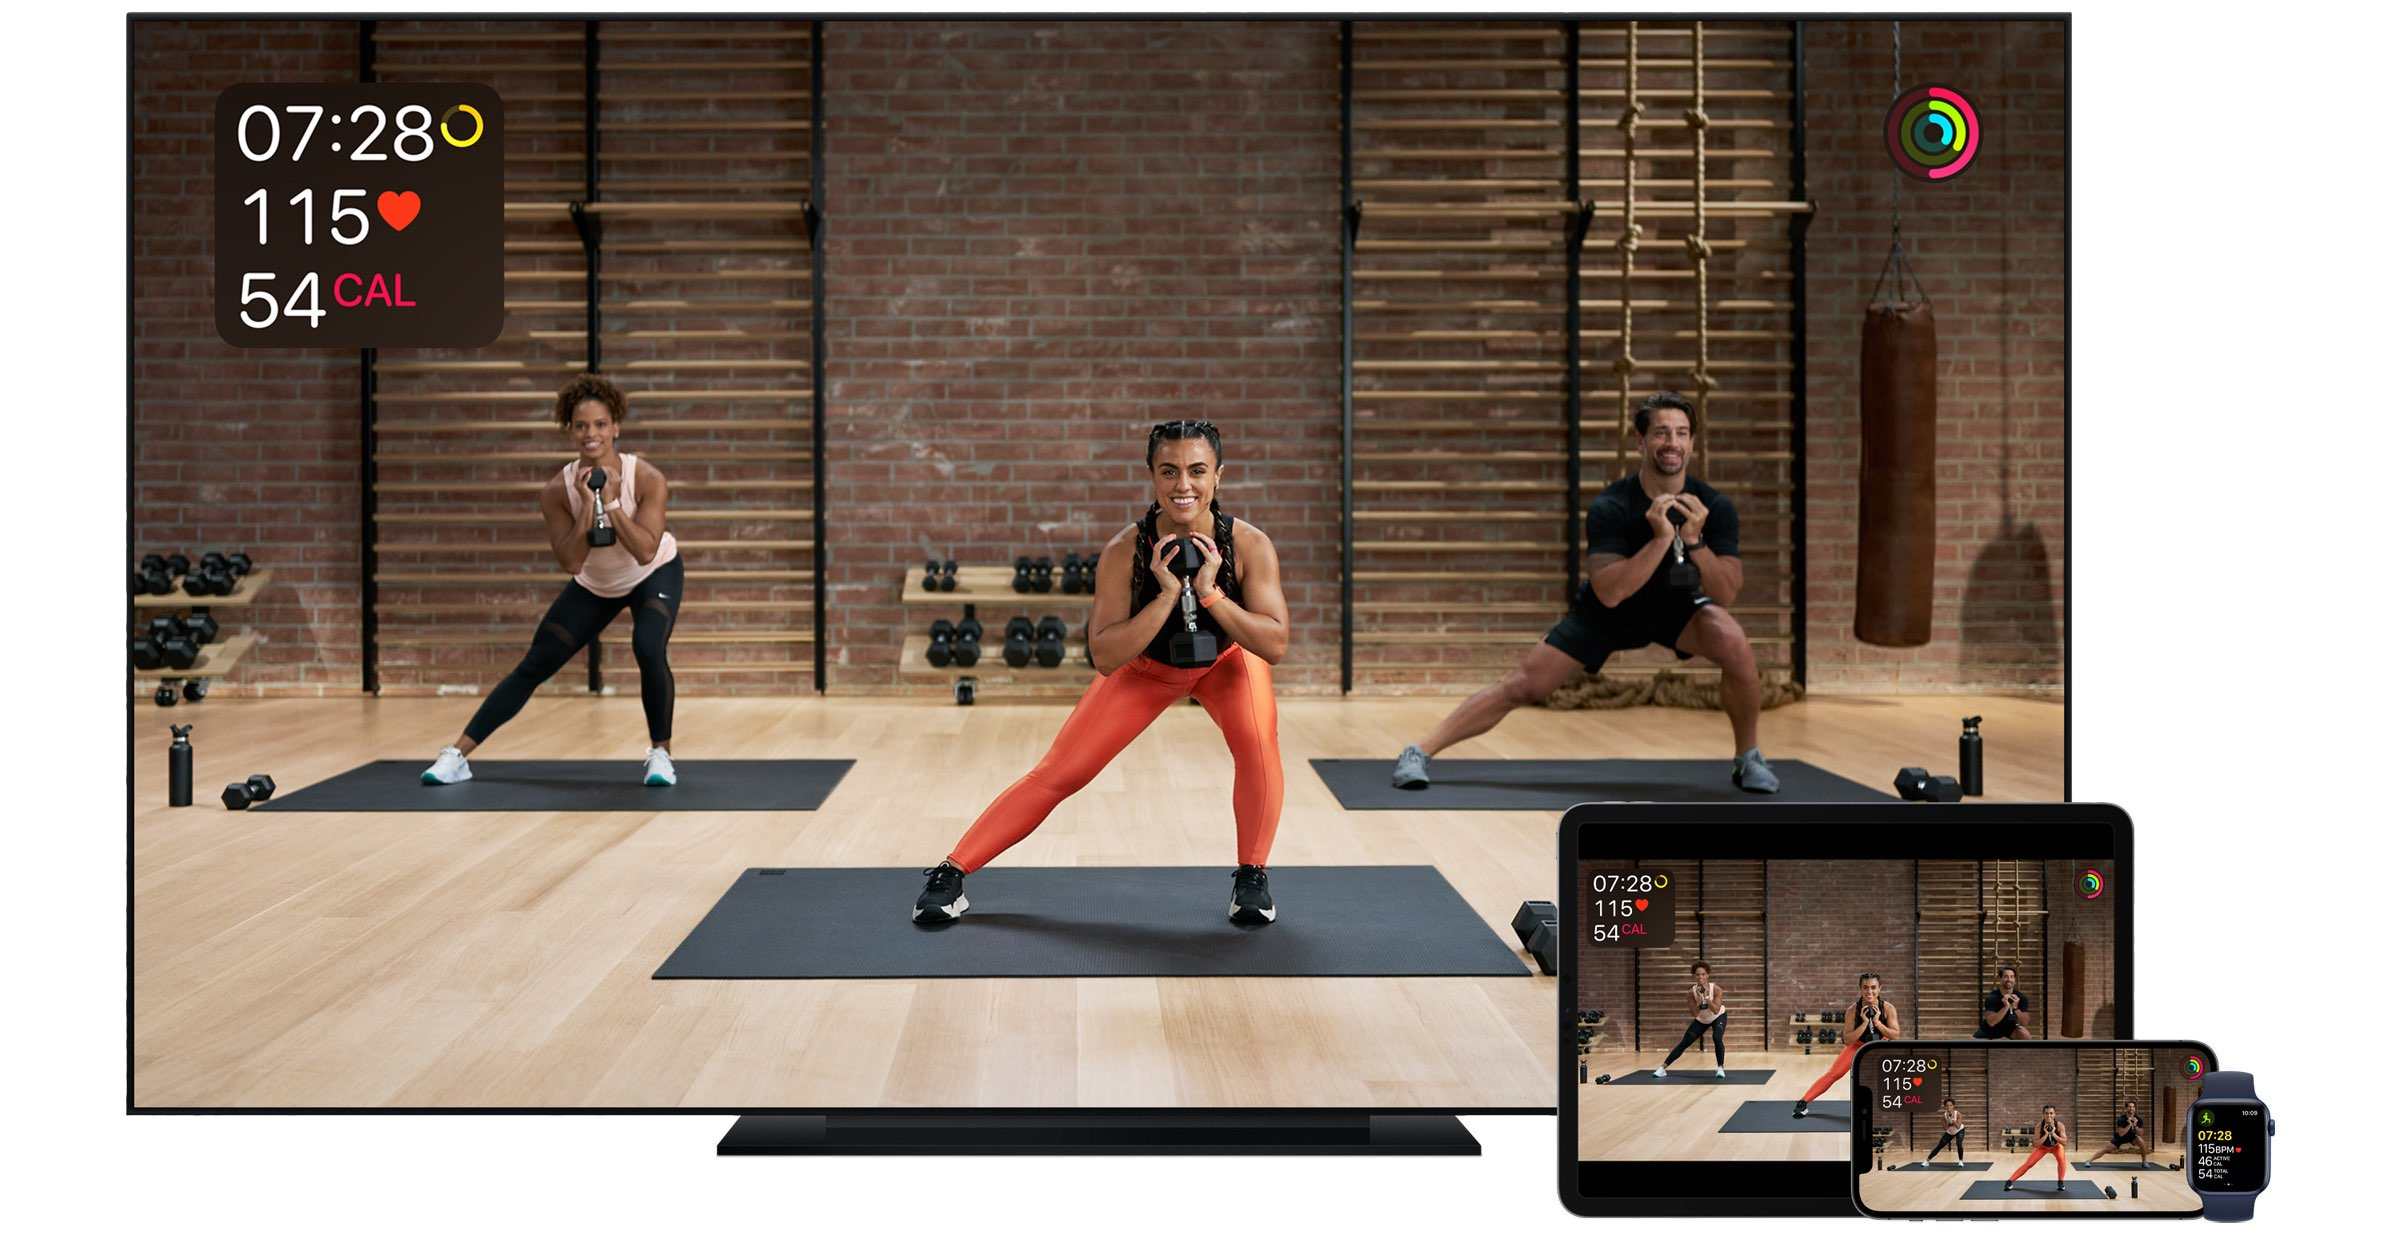 Apple's promotional image illustrating the Fitness+ subscription service